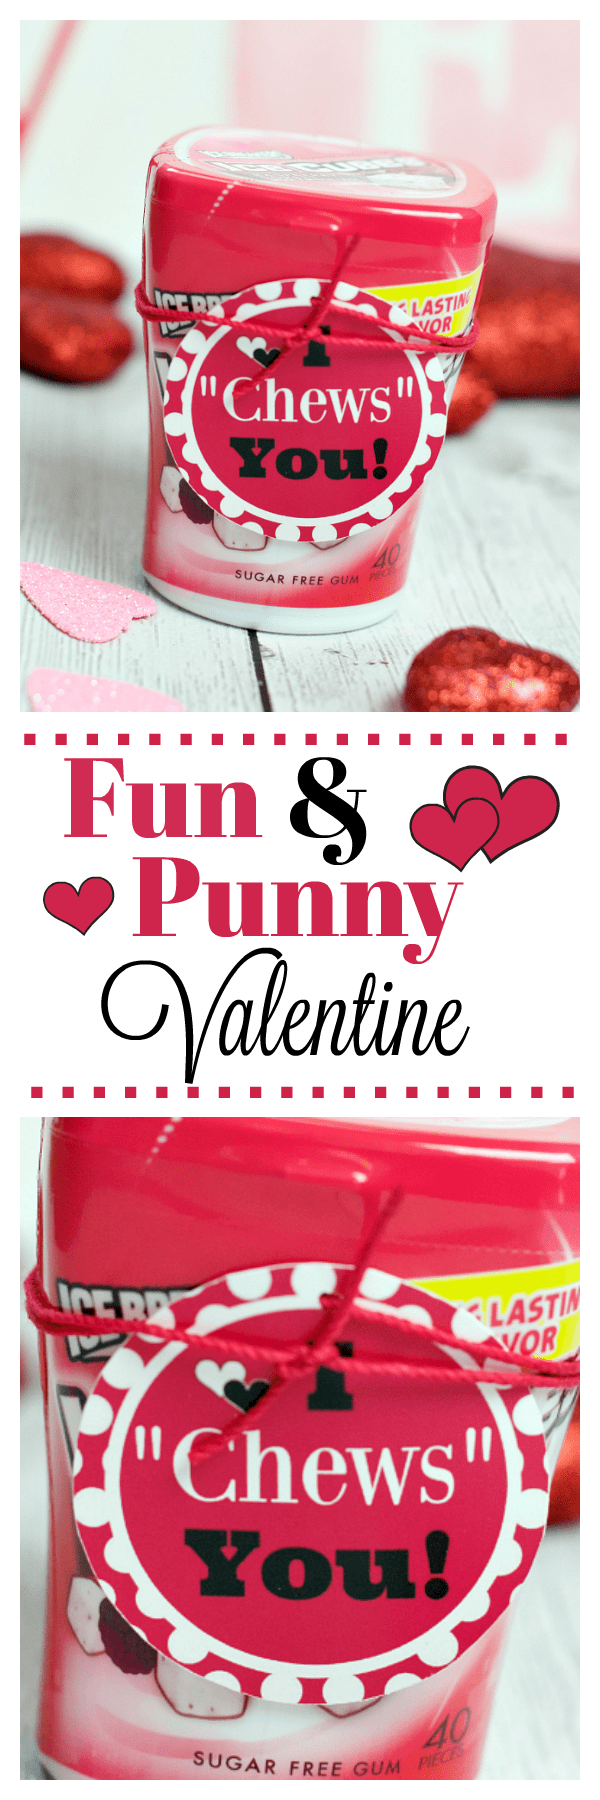 Fun and Punny Valentine. Such a fun way to say Happy Valentine's Day! And it's as simple as adding this tag we have all ready for you! #valentine #valentinesday #funvalentine #punnyvalentine